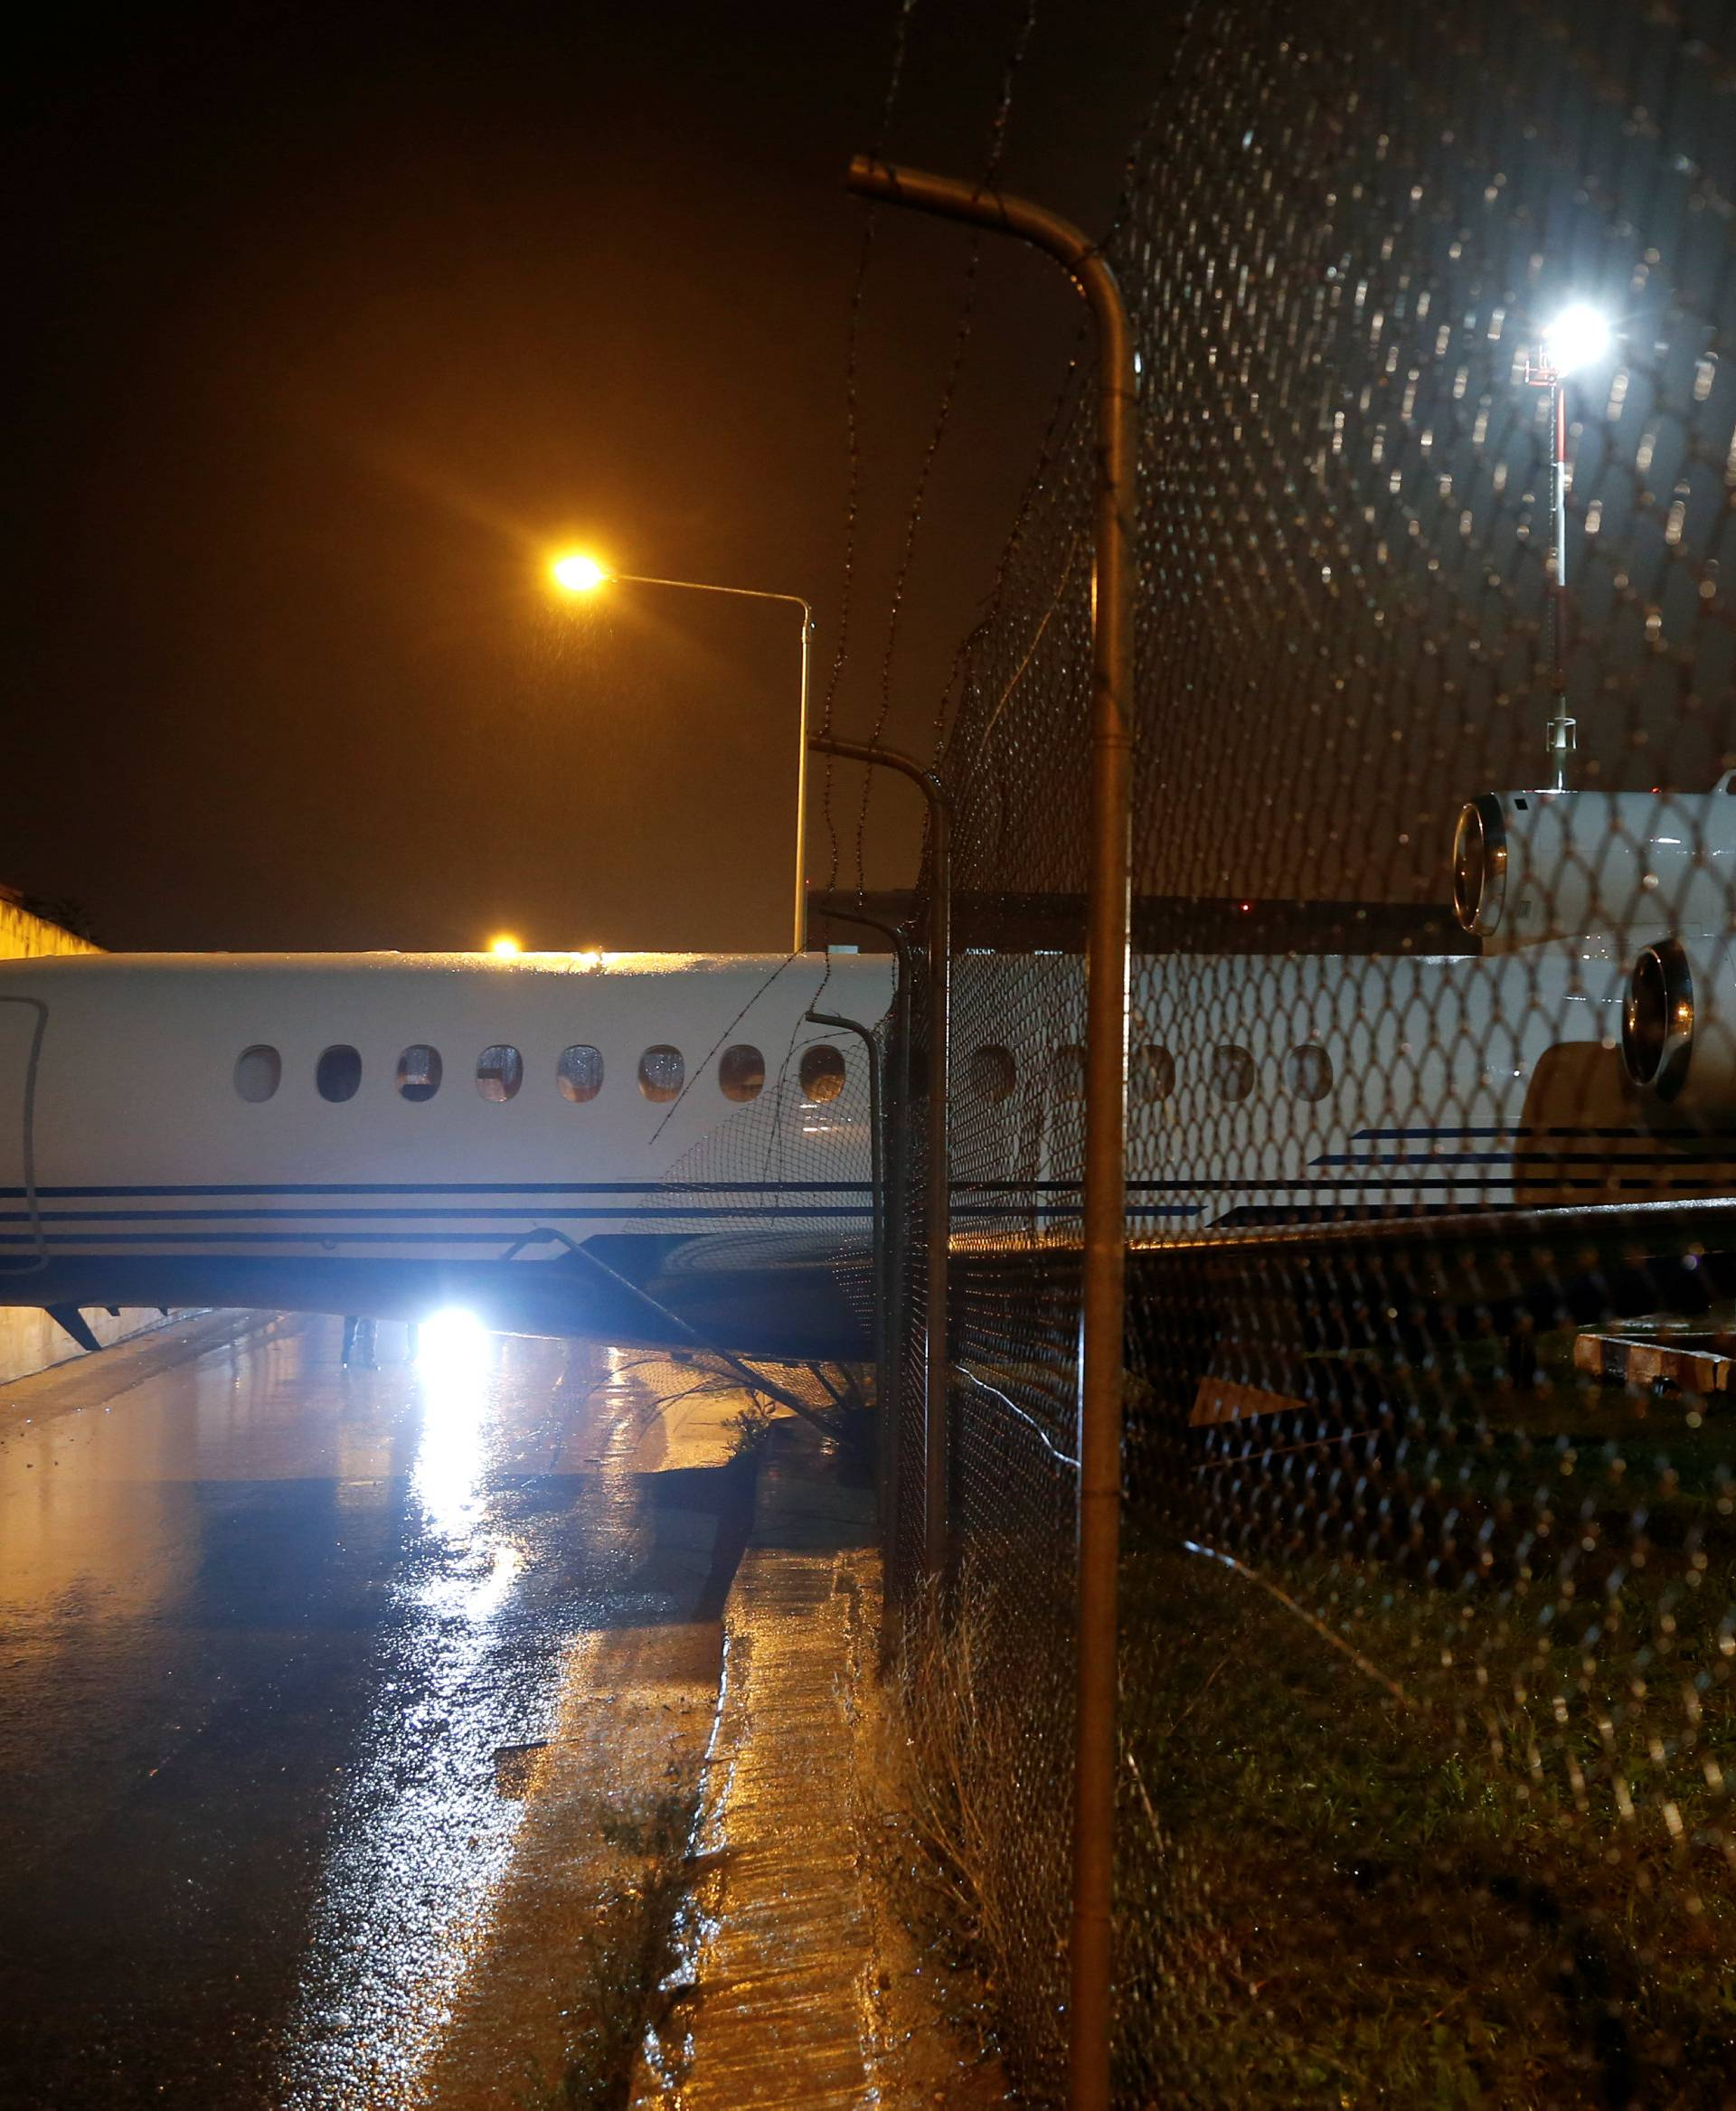 A privately-owned Dassault Falcon 7X business jet aircraft is seen after it was blown off the airport apron and into an adjacent building as strong winds hit the Maltese islands, at Malta International Airport in Luqa